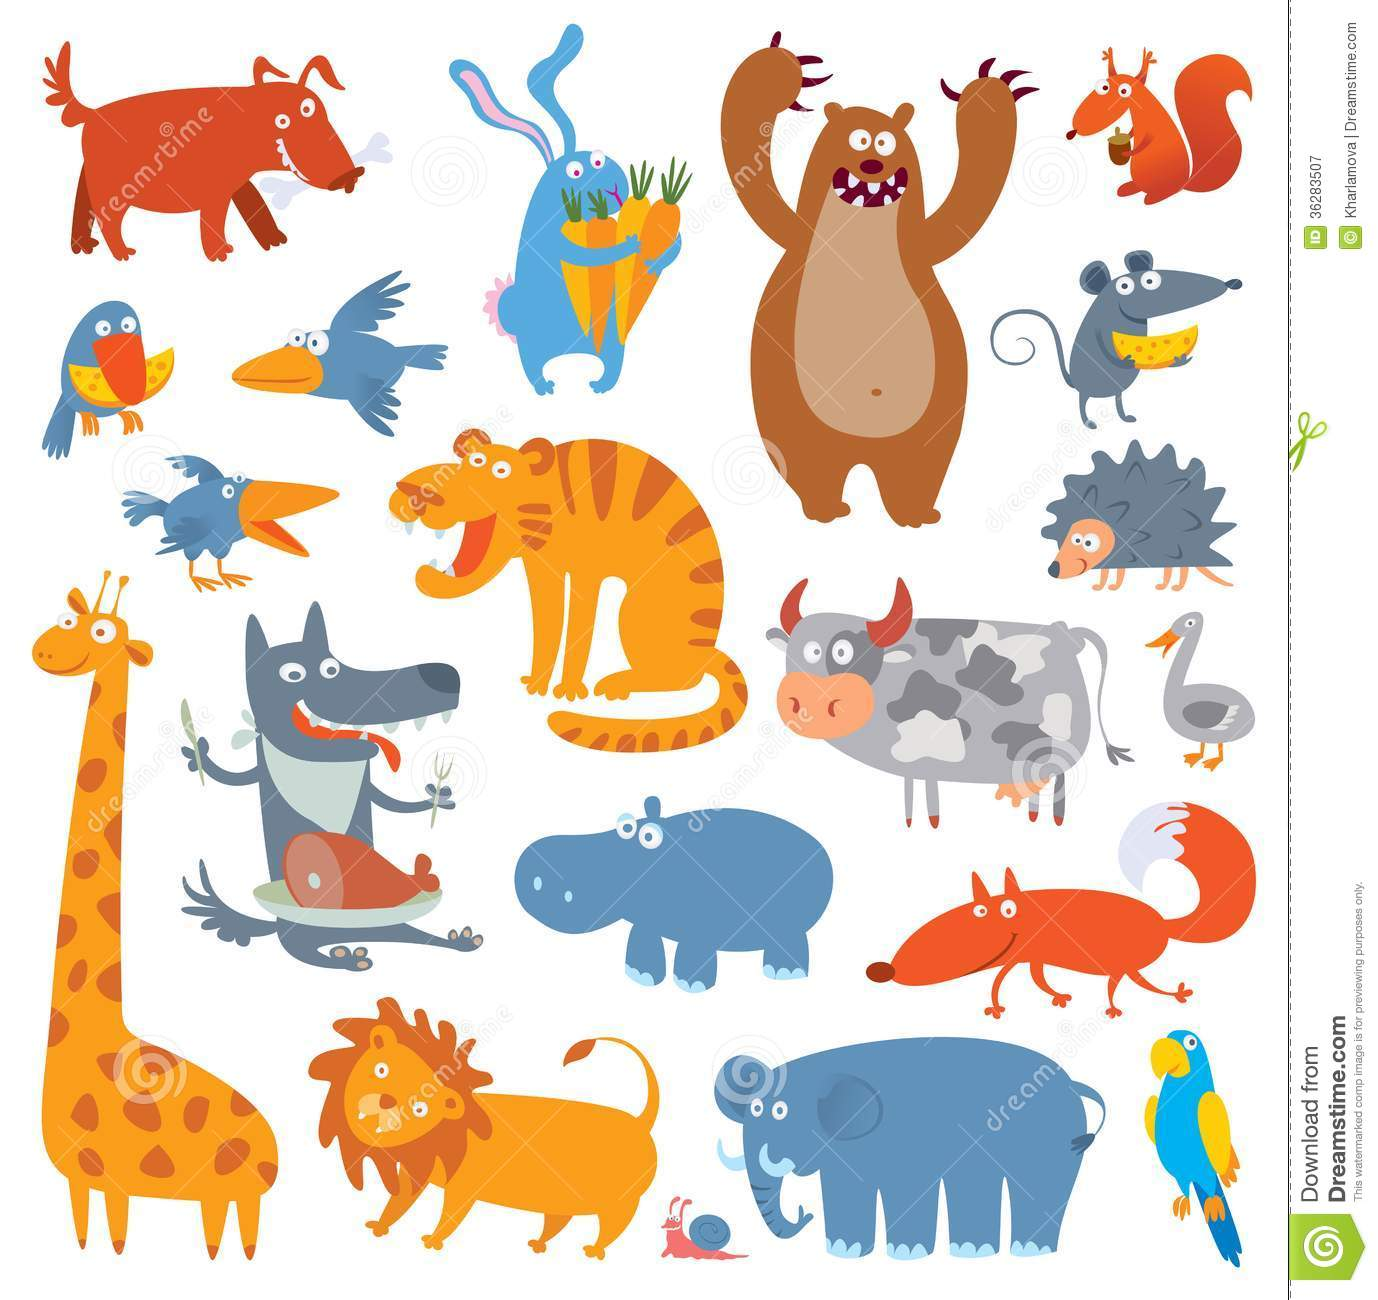 Cute Zoo Animals  Vector Illustration  Isolated On White Background